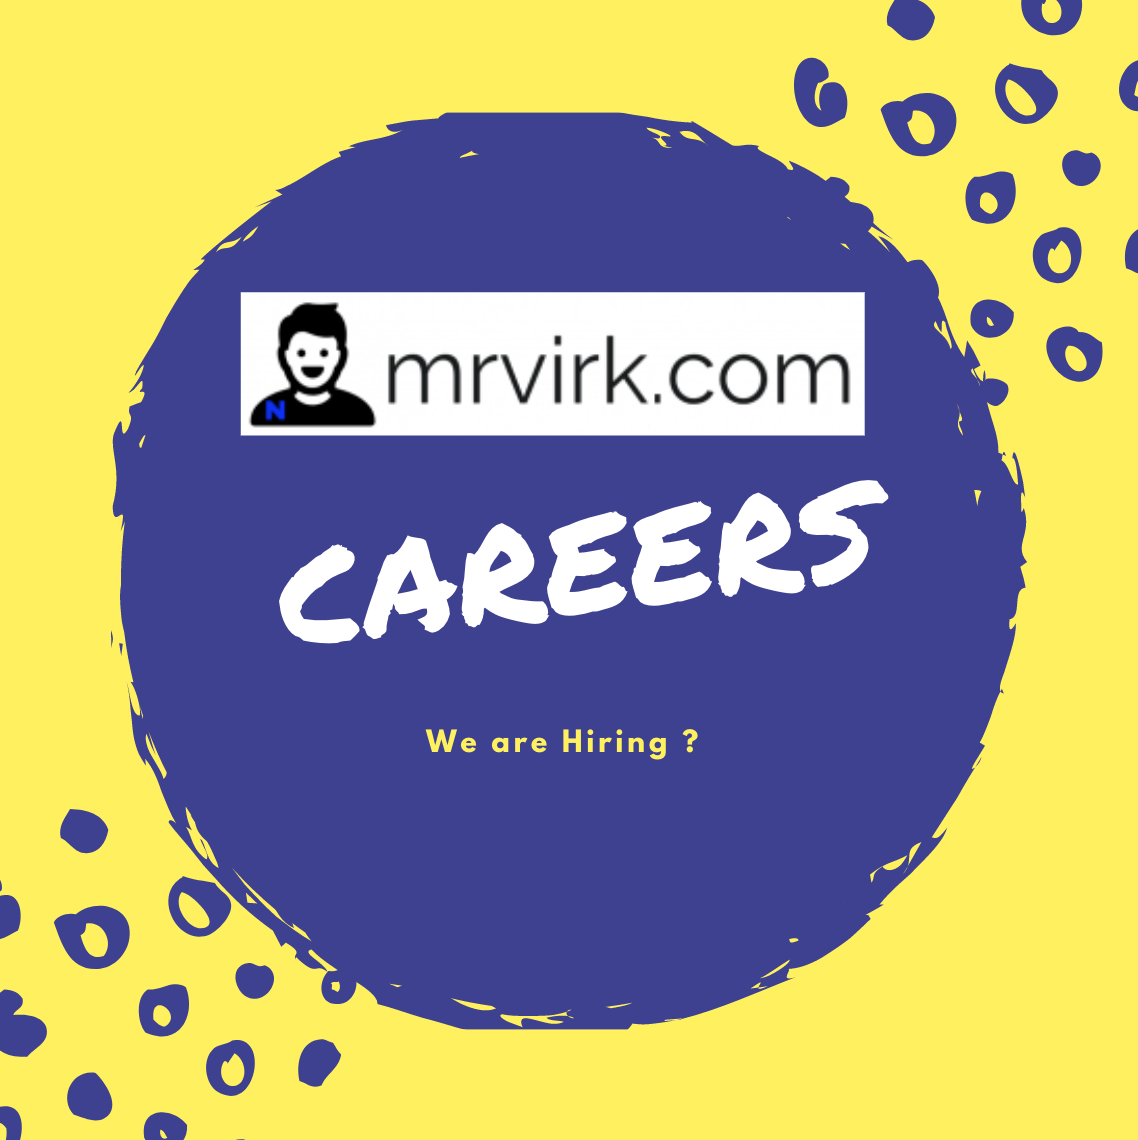 Mrvirk Careers page